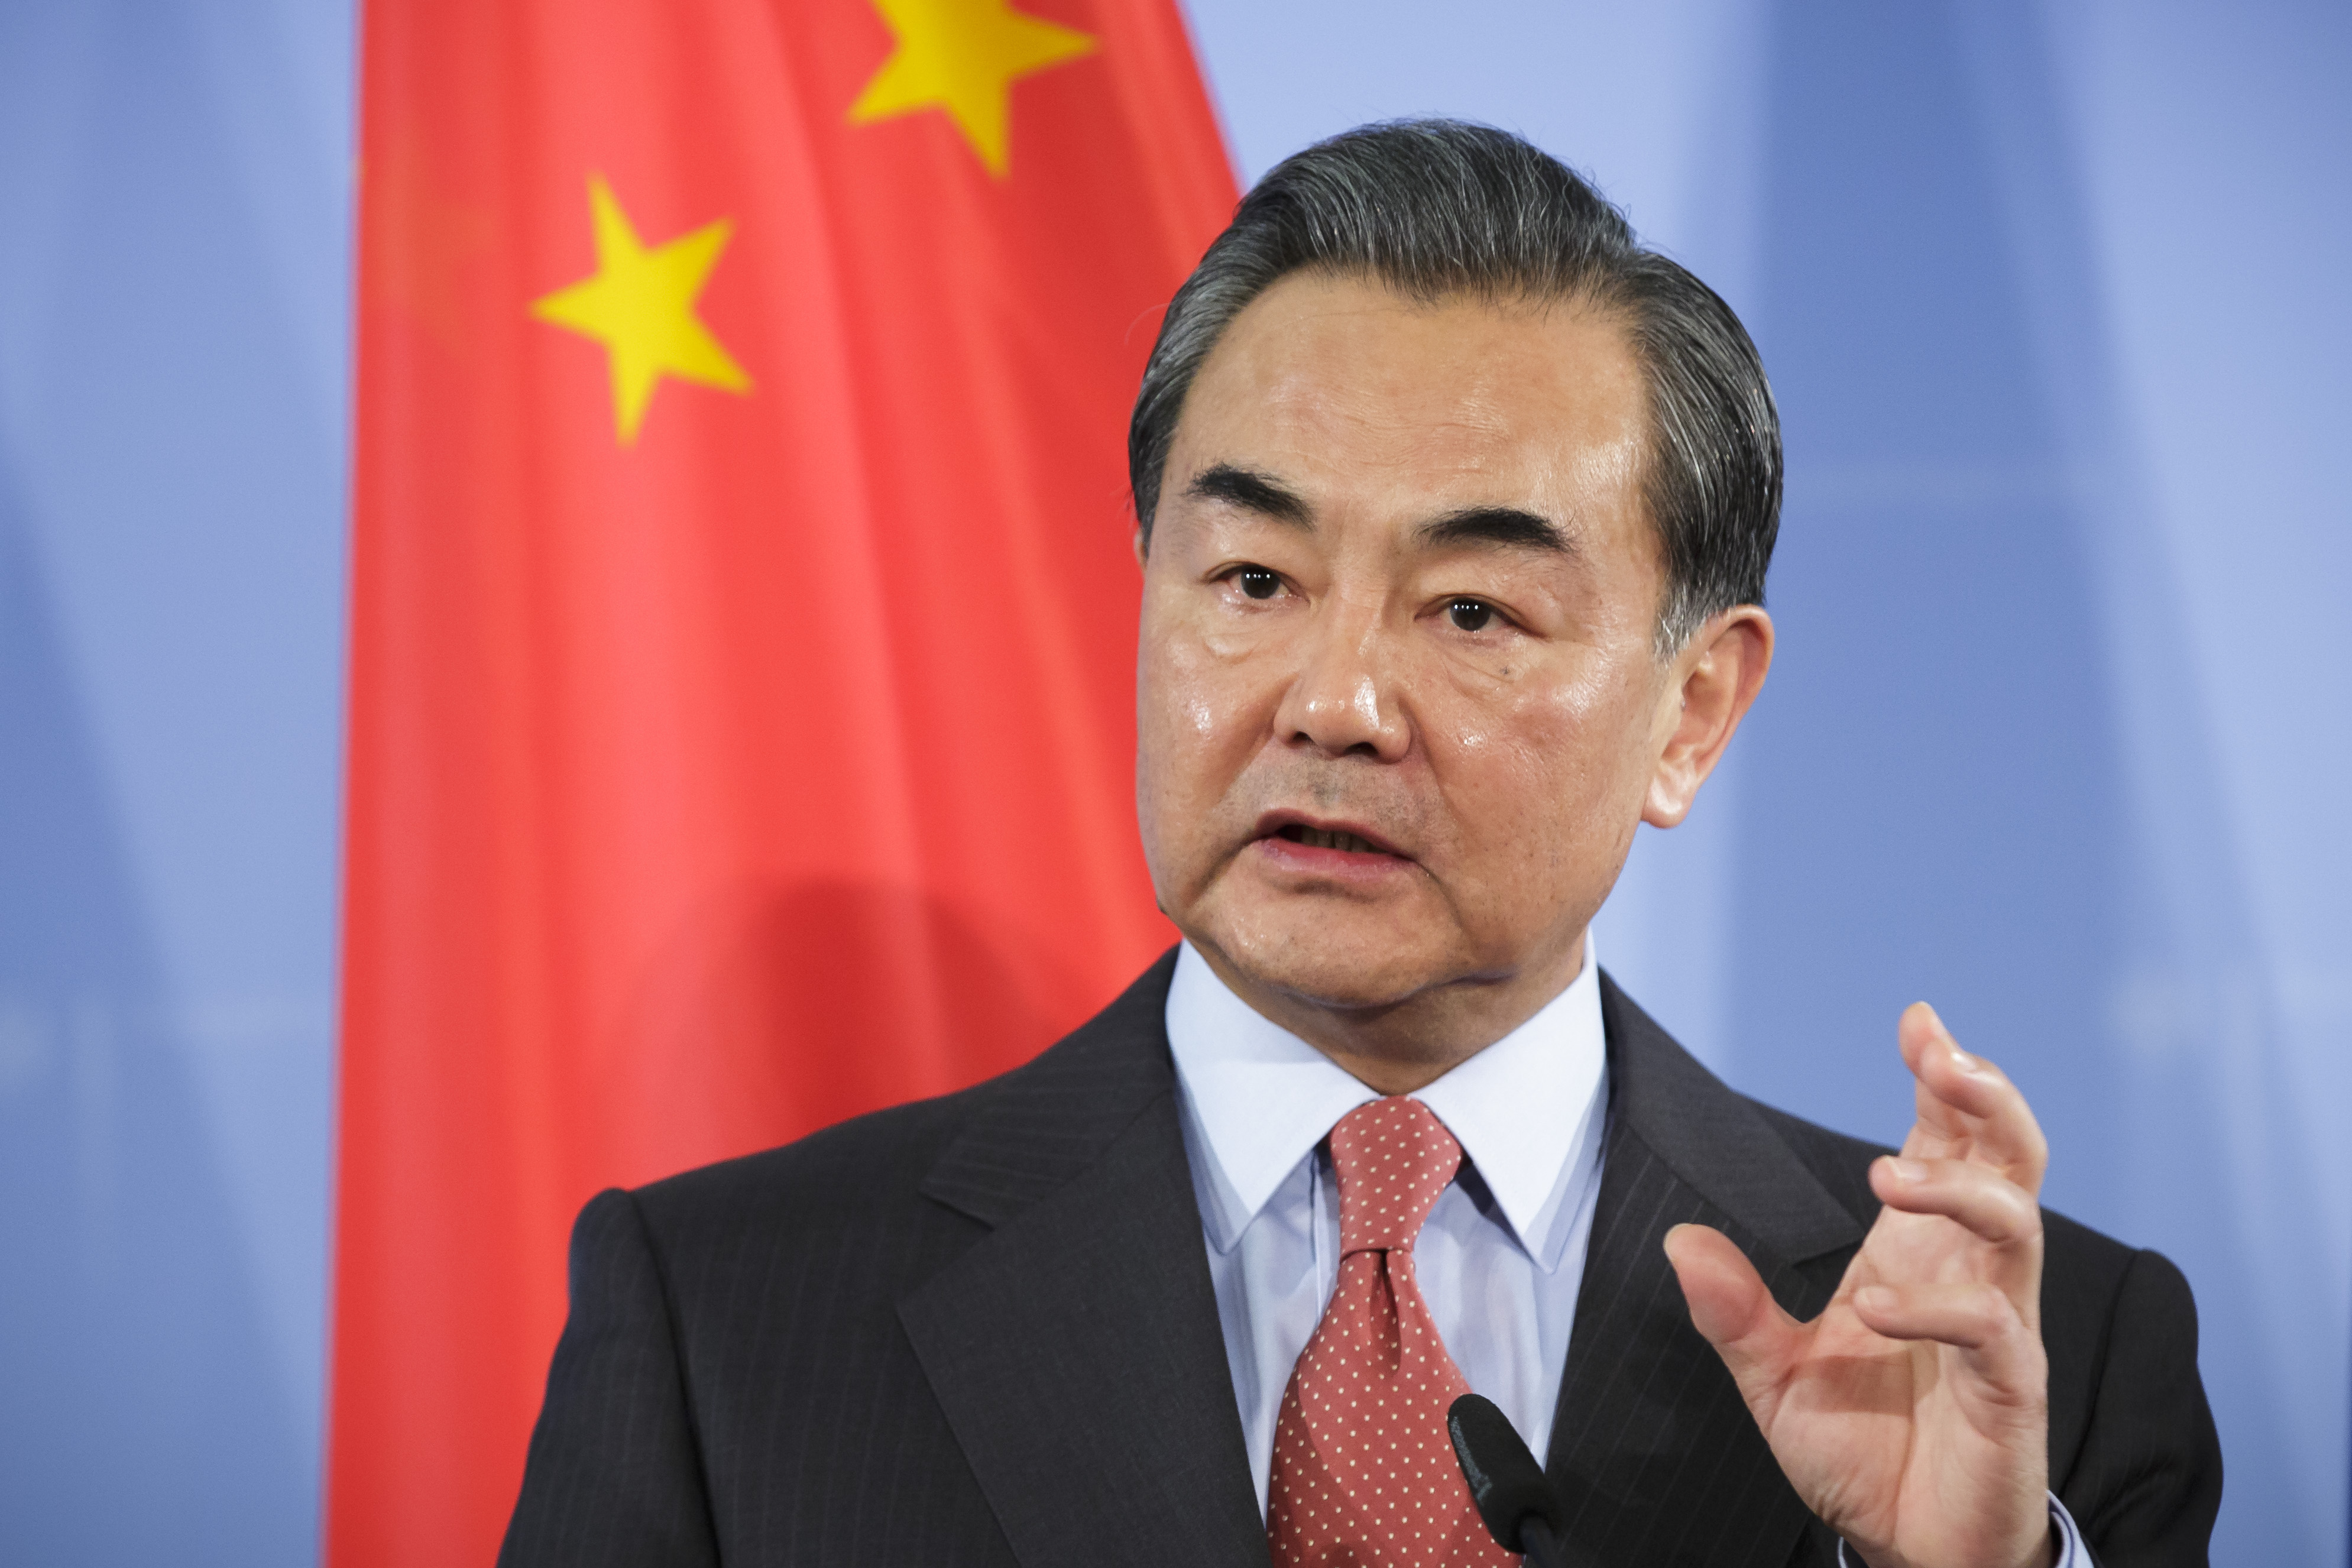 China's Foreign Minister Wang Yi on Dec. 19, 2015, in Berlin